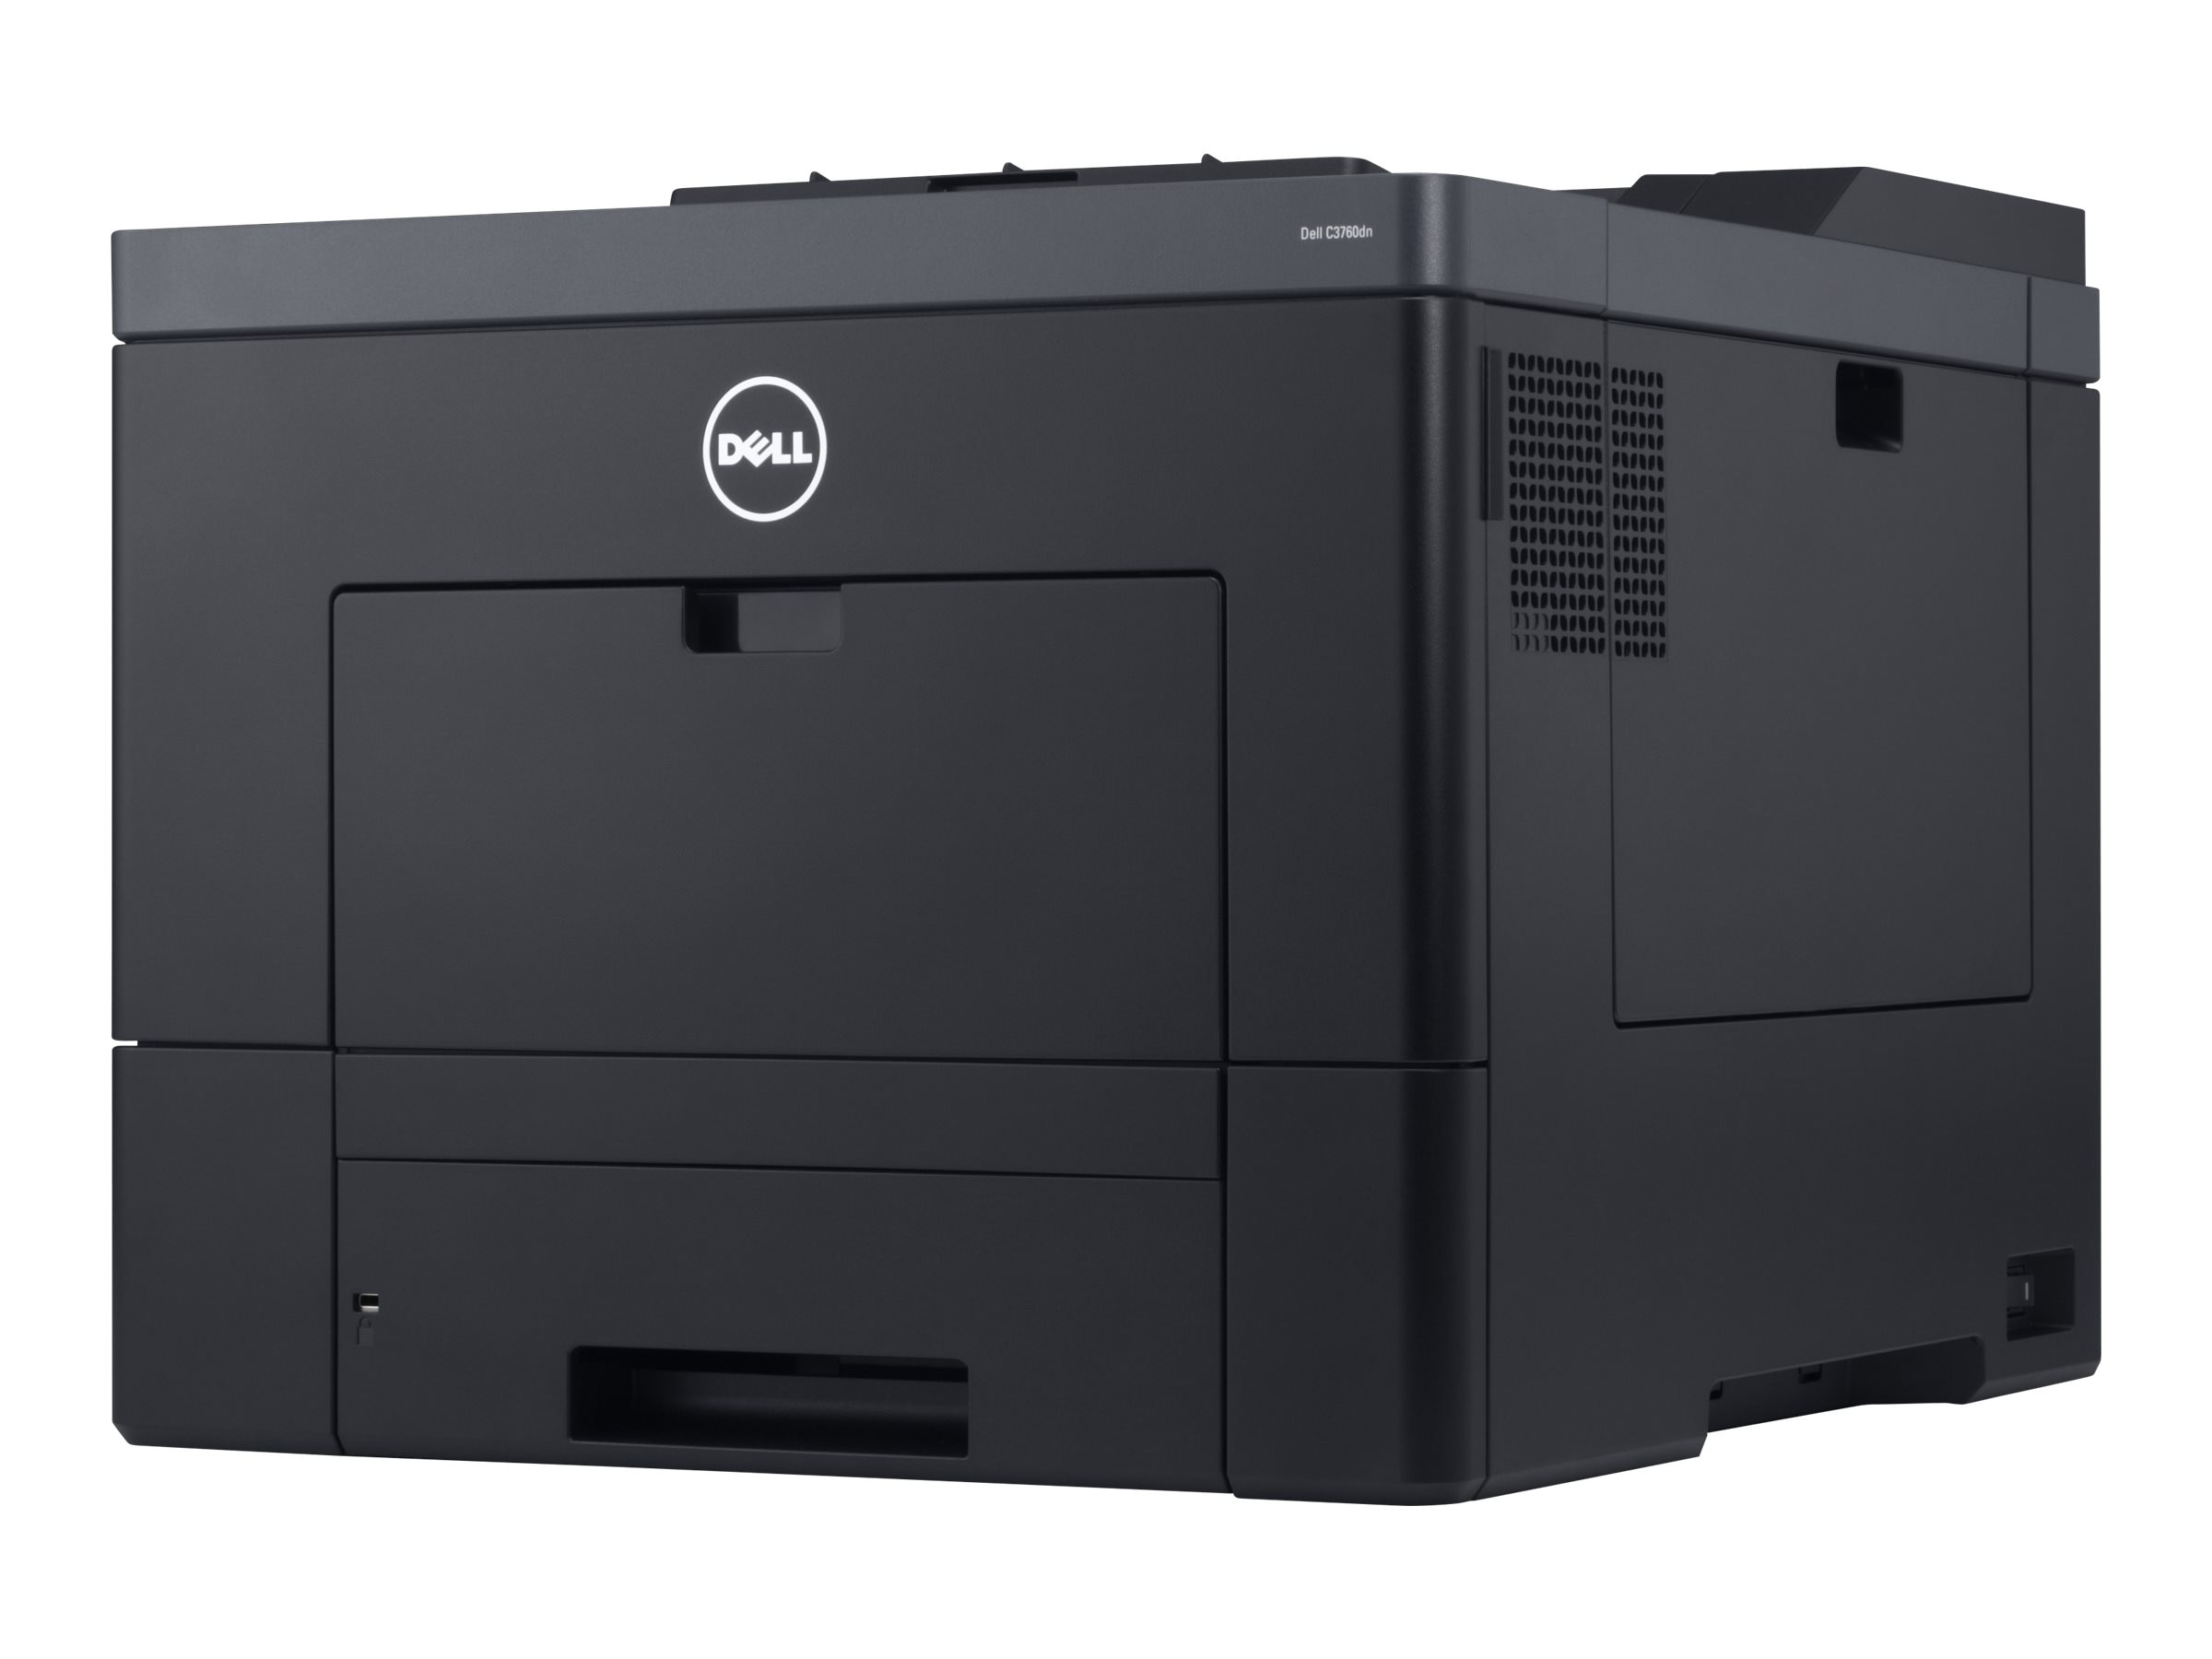 Dell C3760dn Color Laser Printer (TAA Compliant)